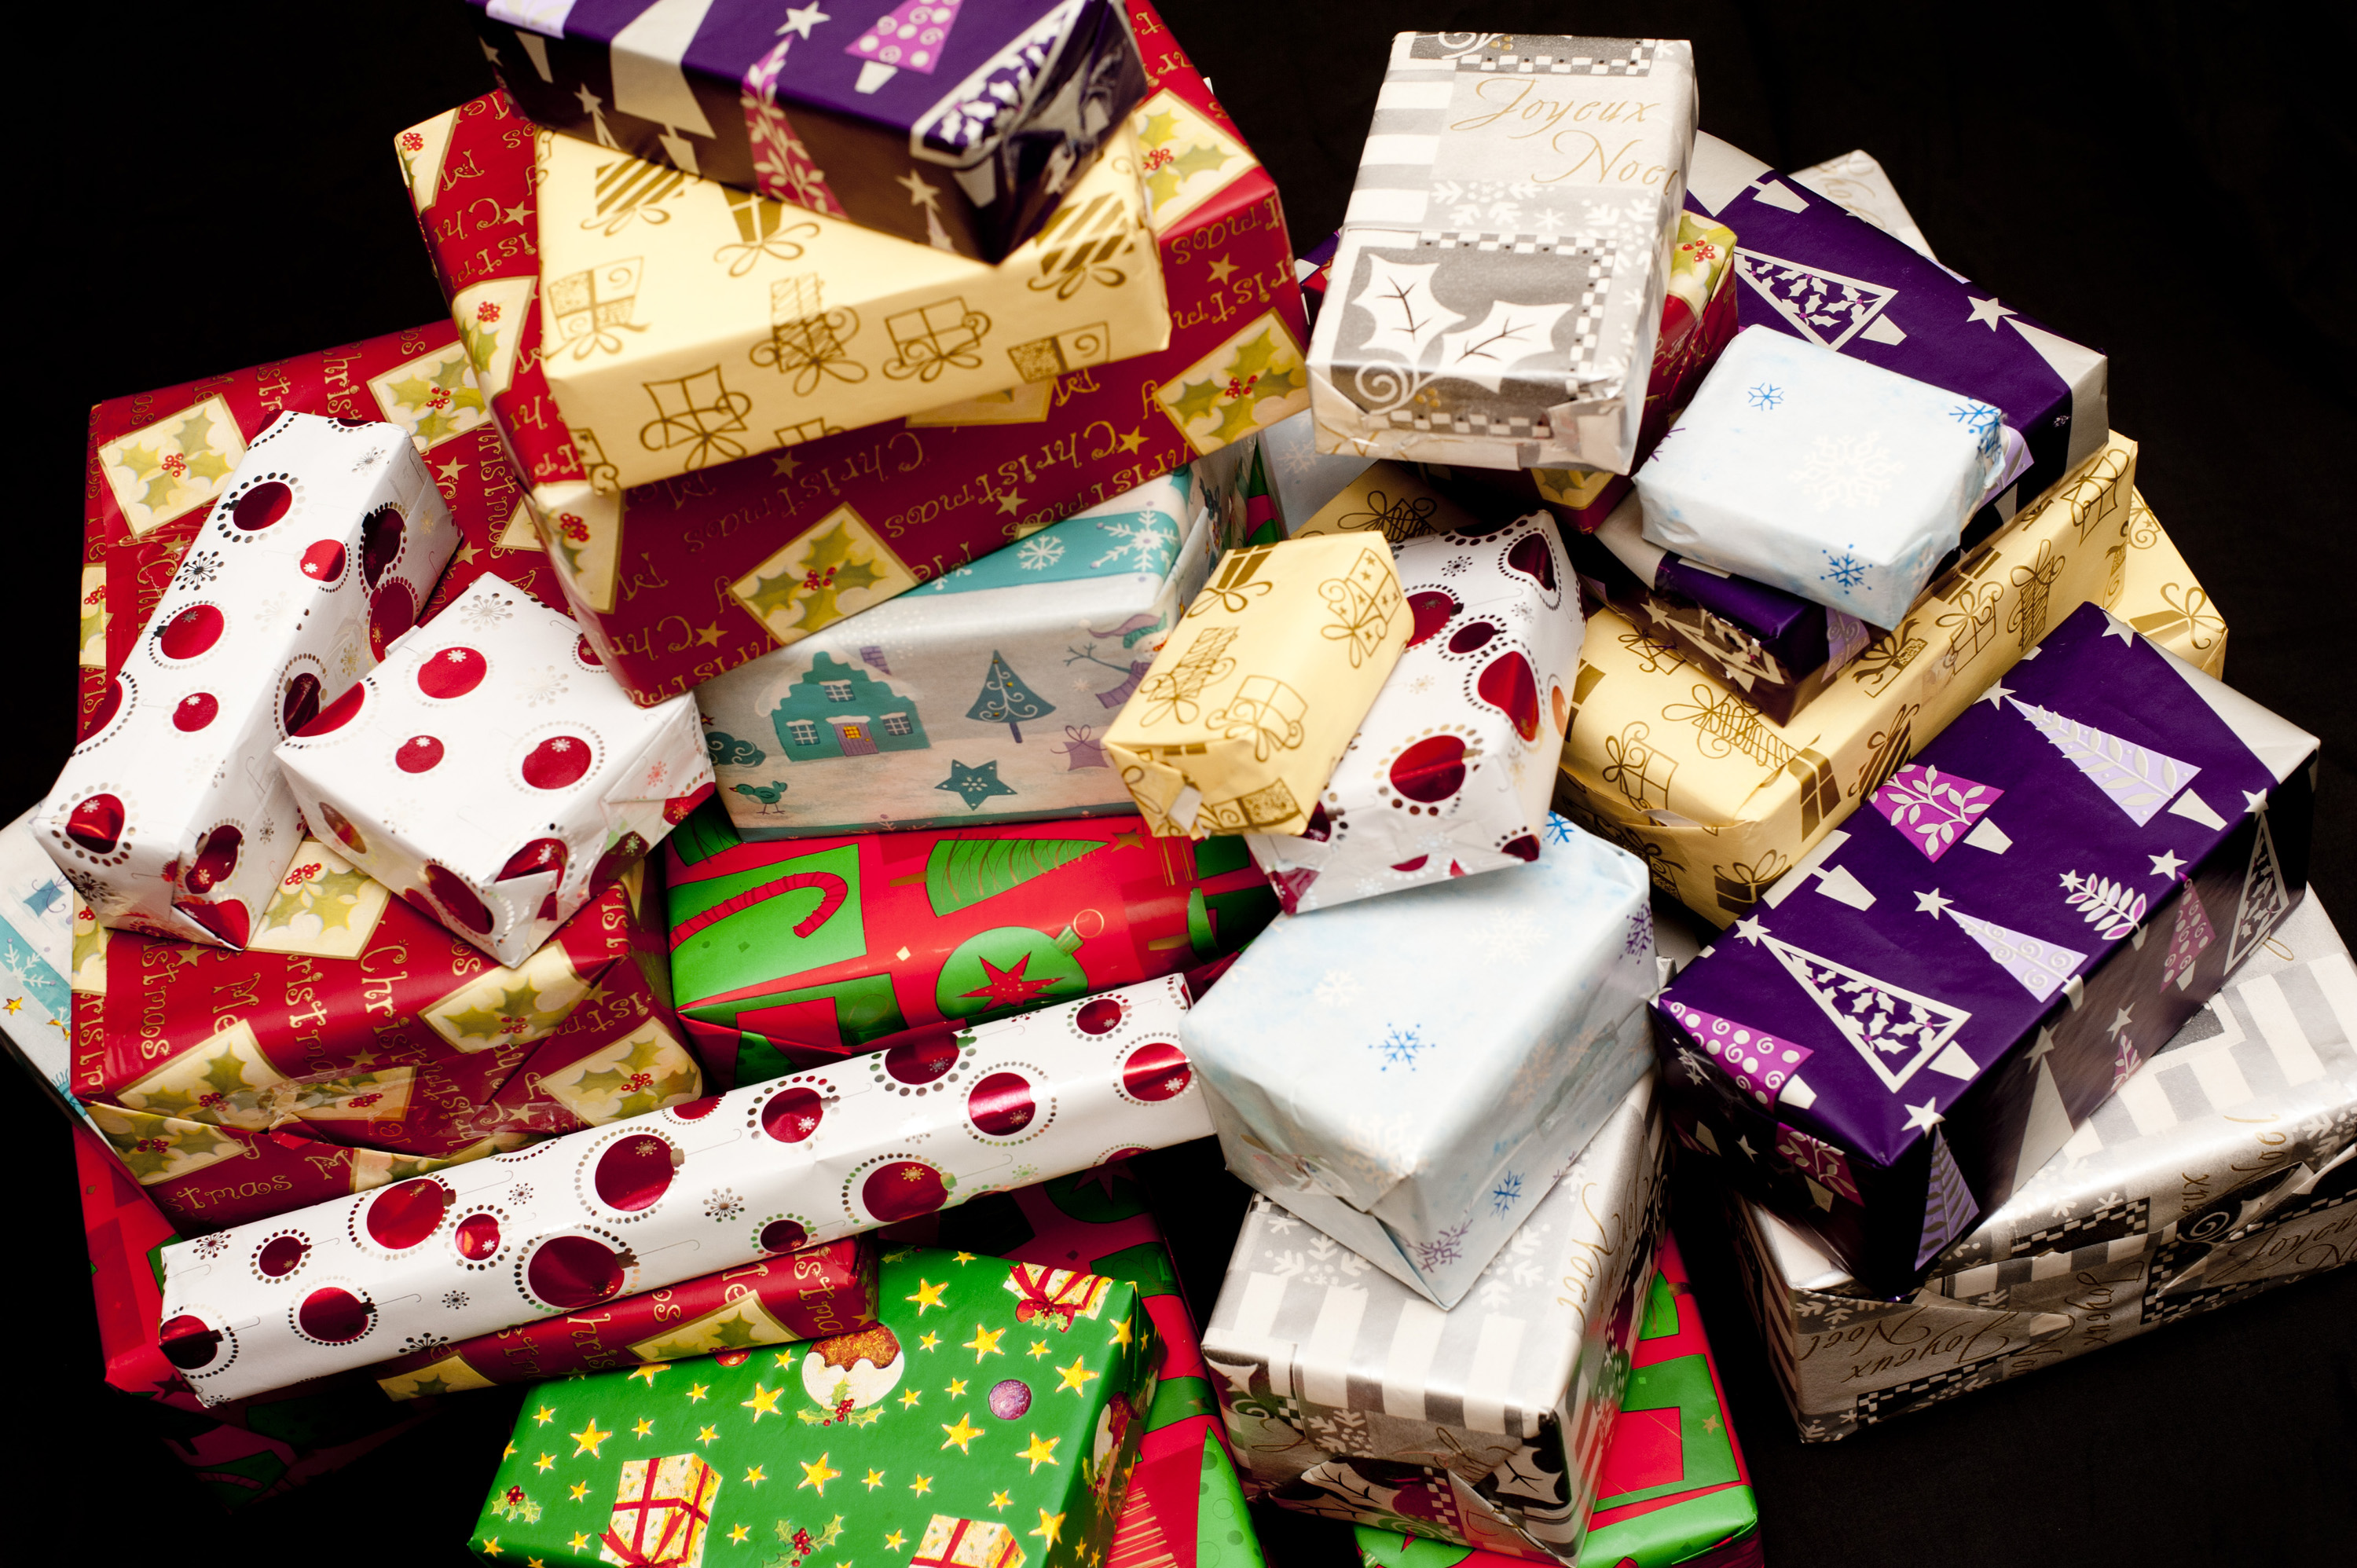 christmas gifts gift pile wrapped colorful paper colored sizes patterned christmasstockimages assorted brightly shapes